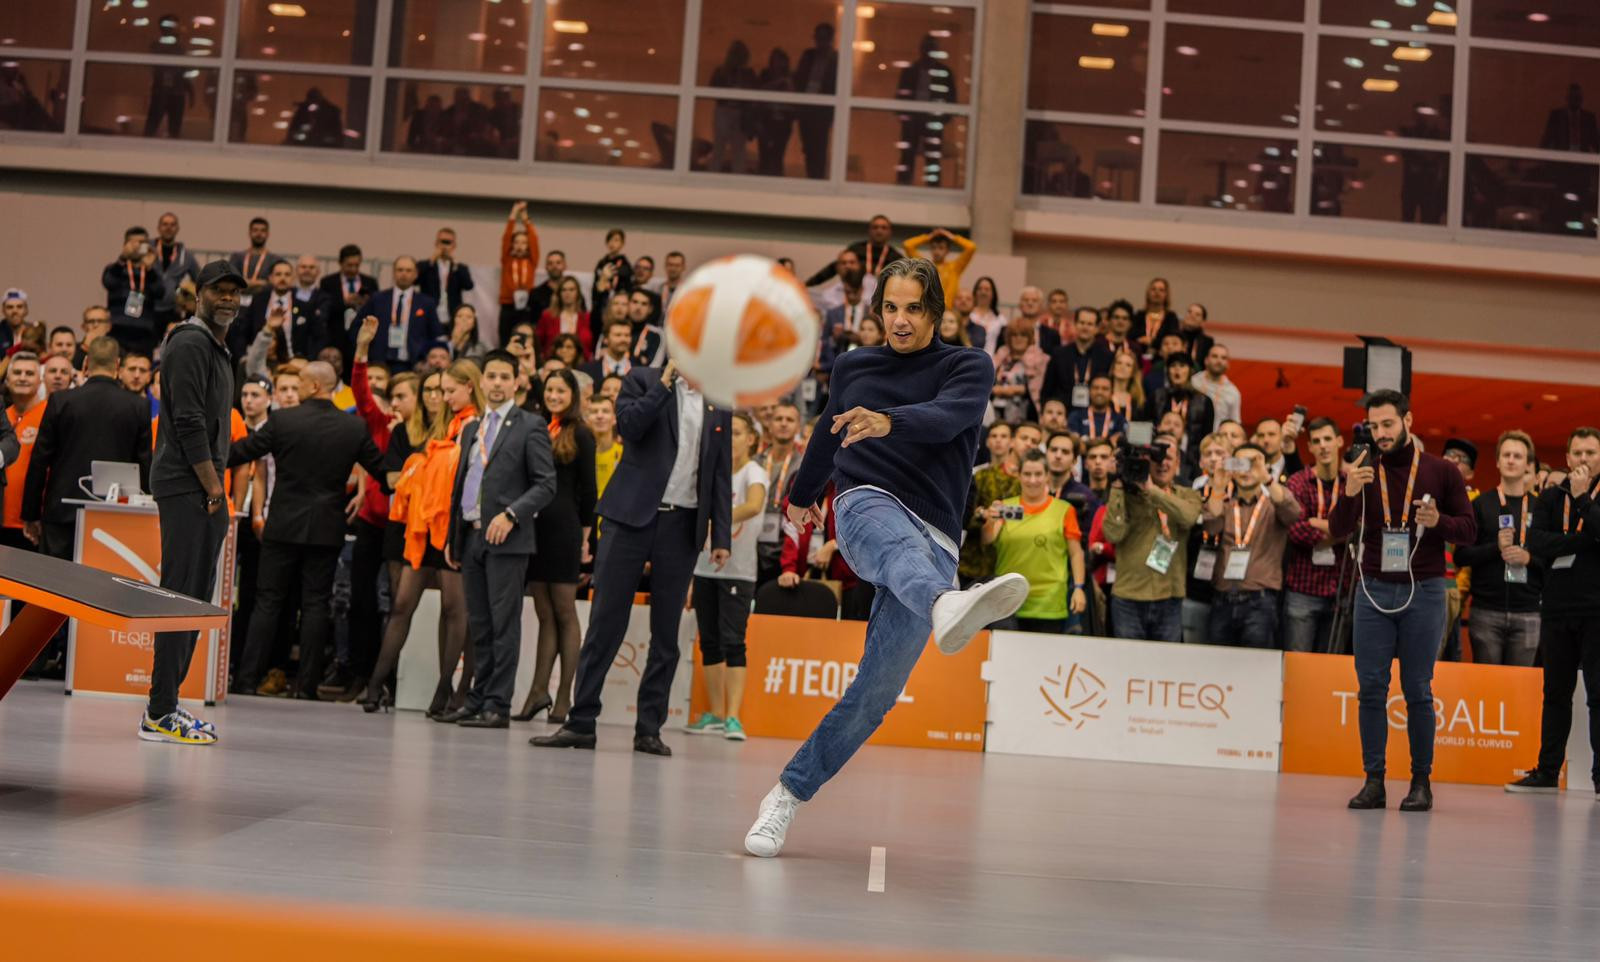 Footballing legends such as Nuno Gomes of Portugal were out in force on the second day of the Teqball World Championships ©FITEQ